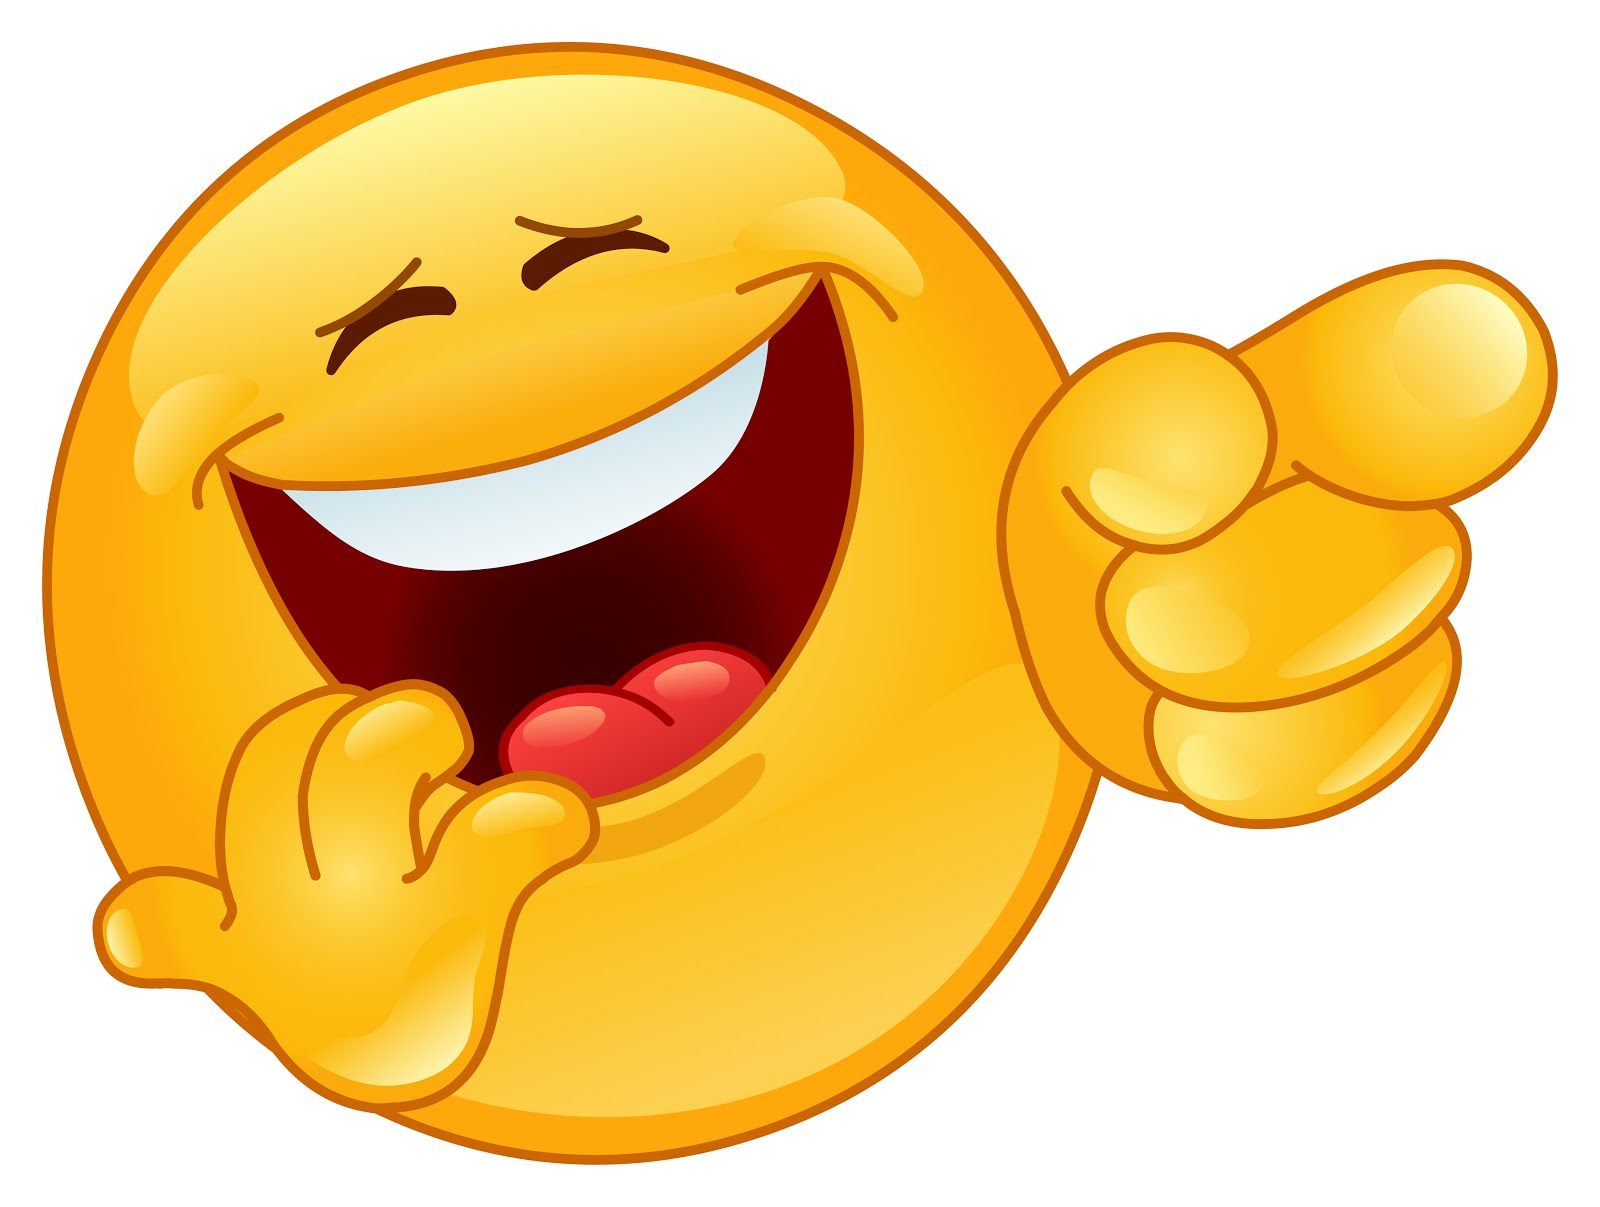 Laughing Face Clip Art